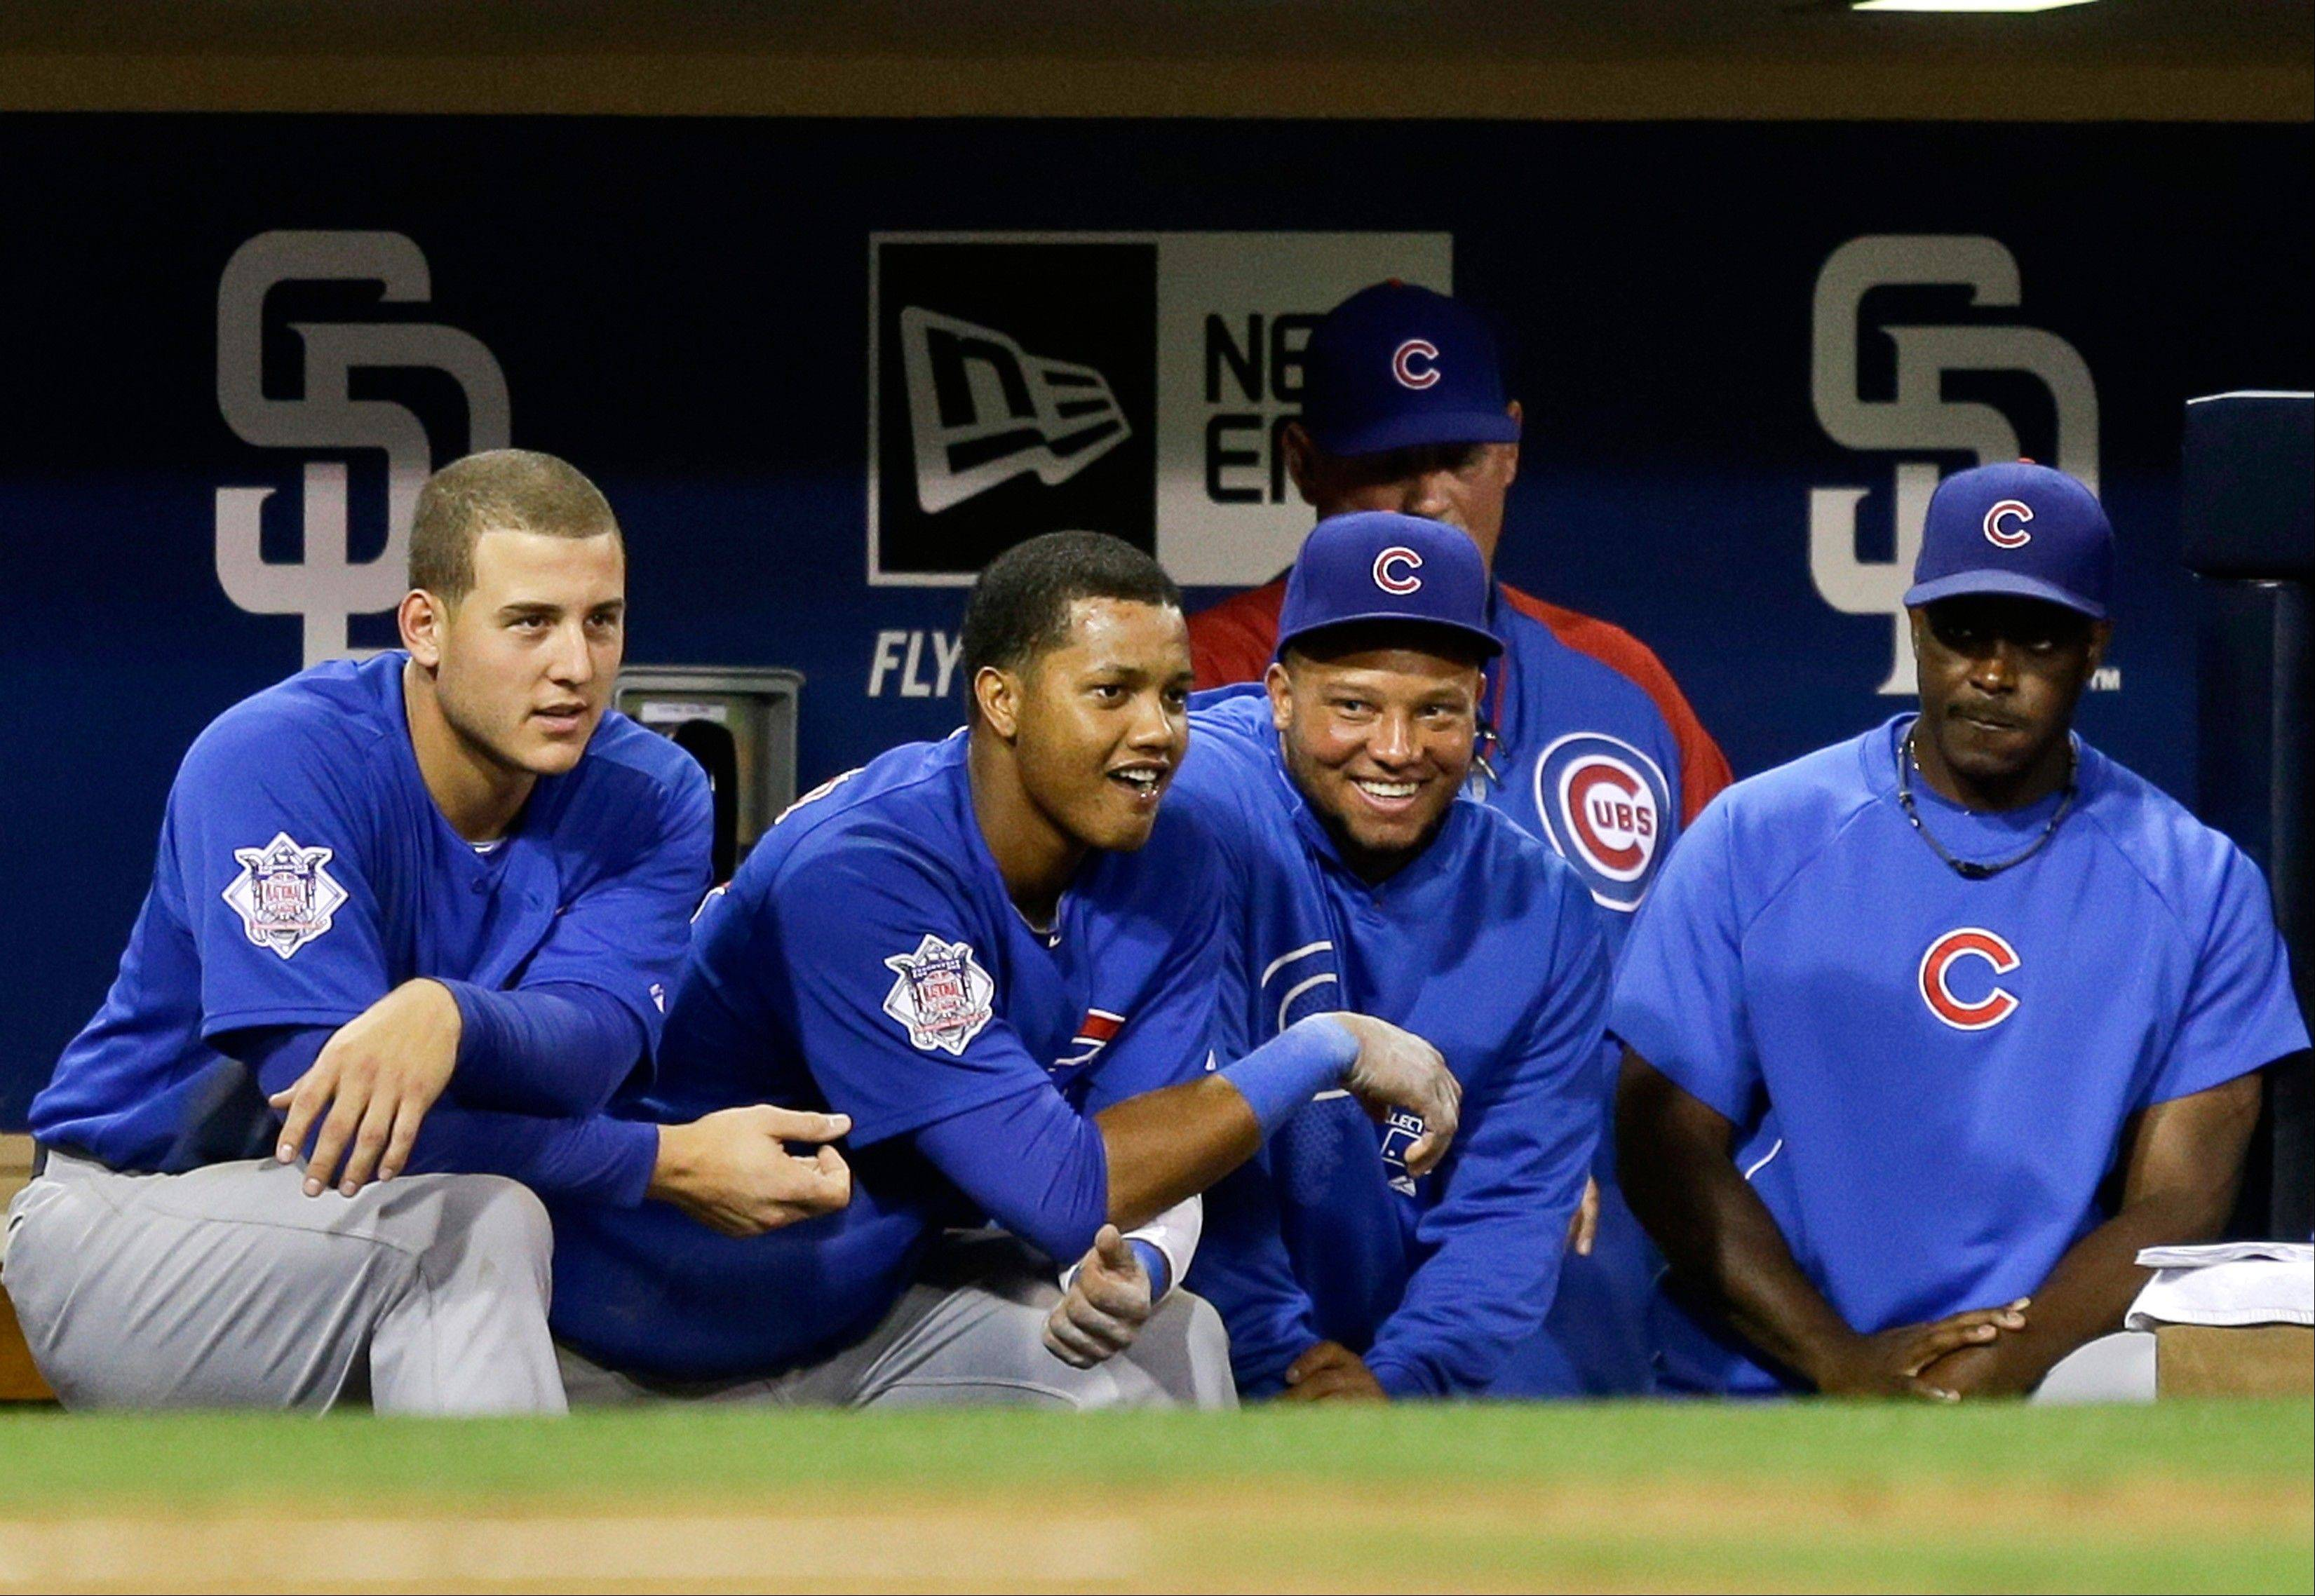 While he looks comfortable here, Cubs shortstop Starlin Castro, second from left, hasn't played that way at the plate or in the field this season.